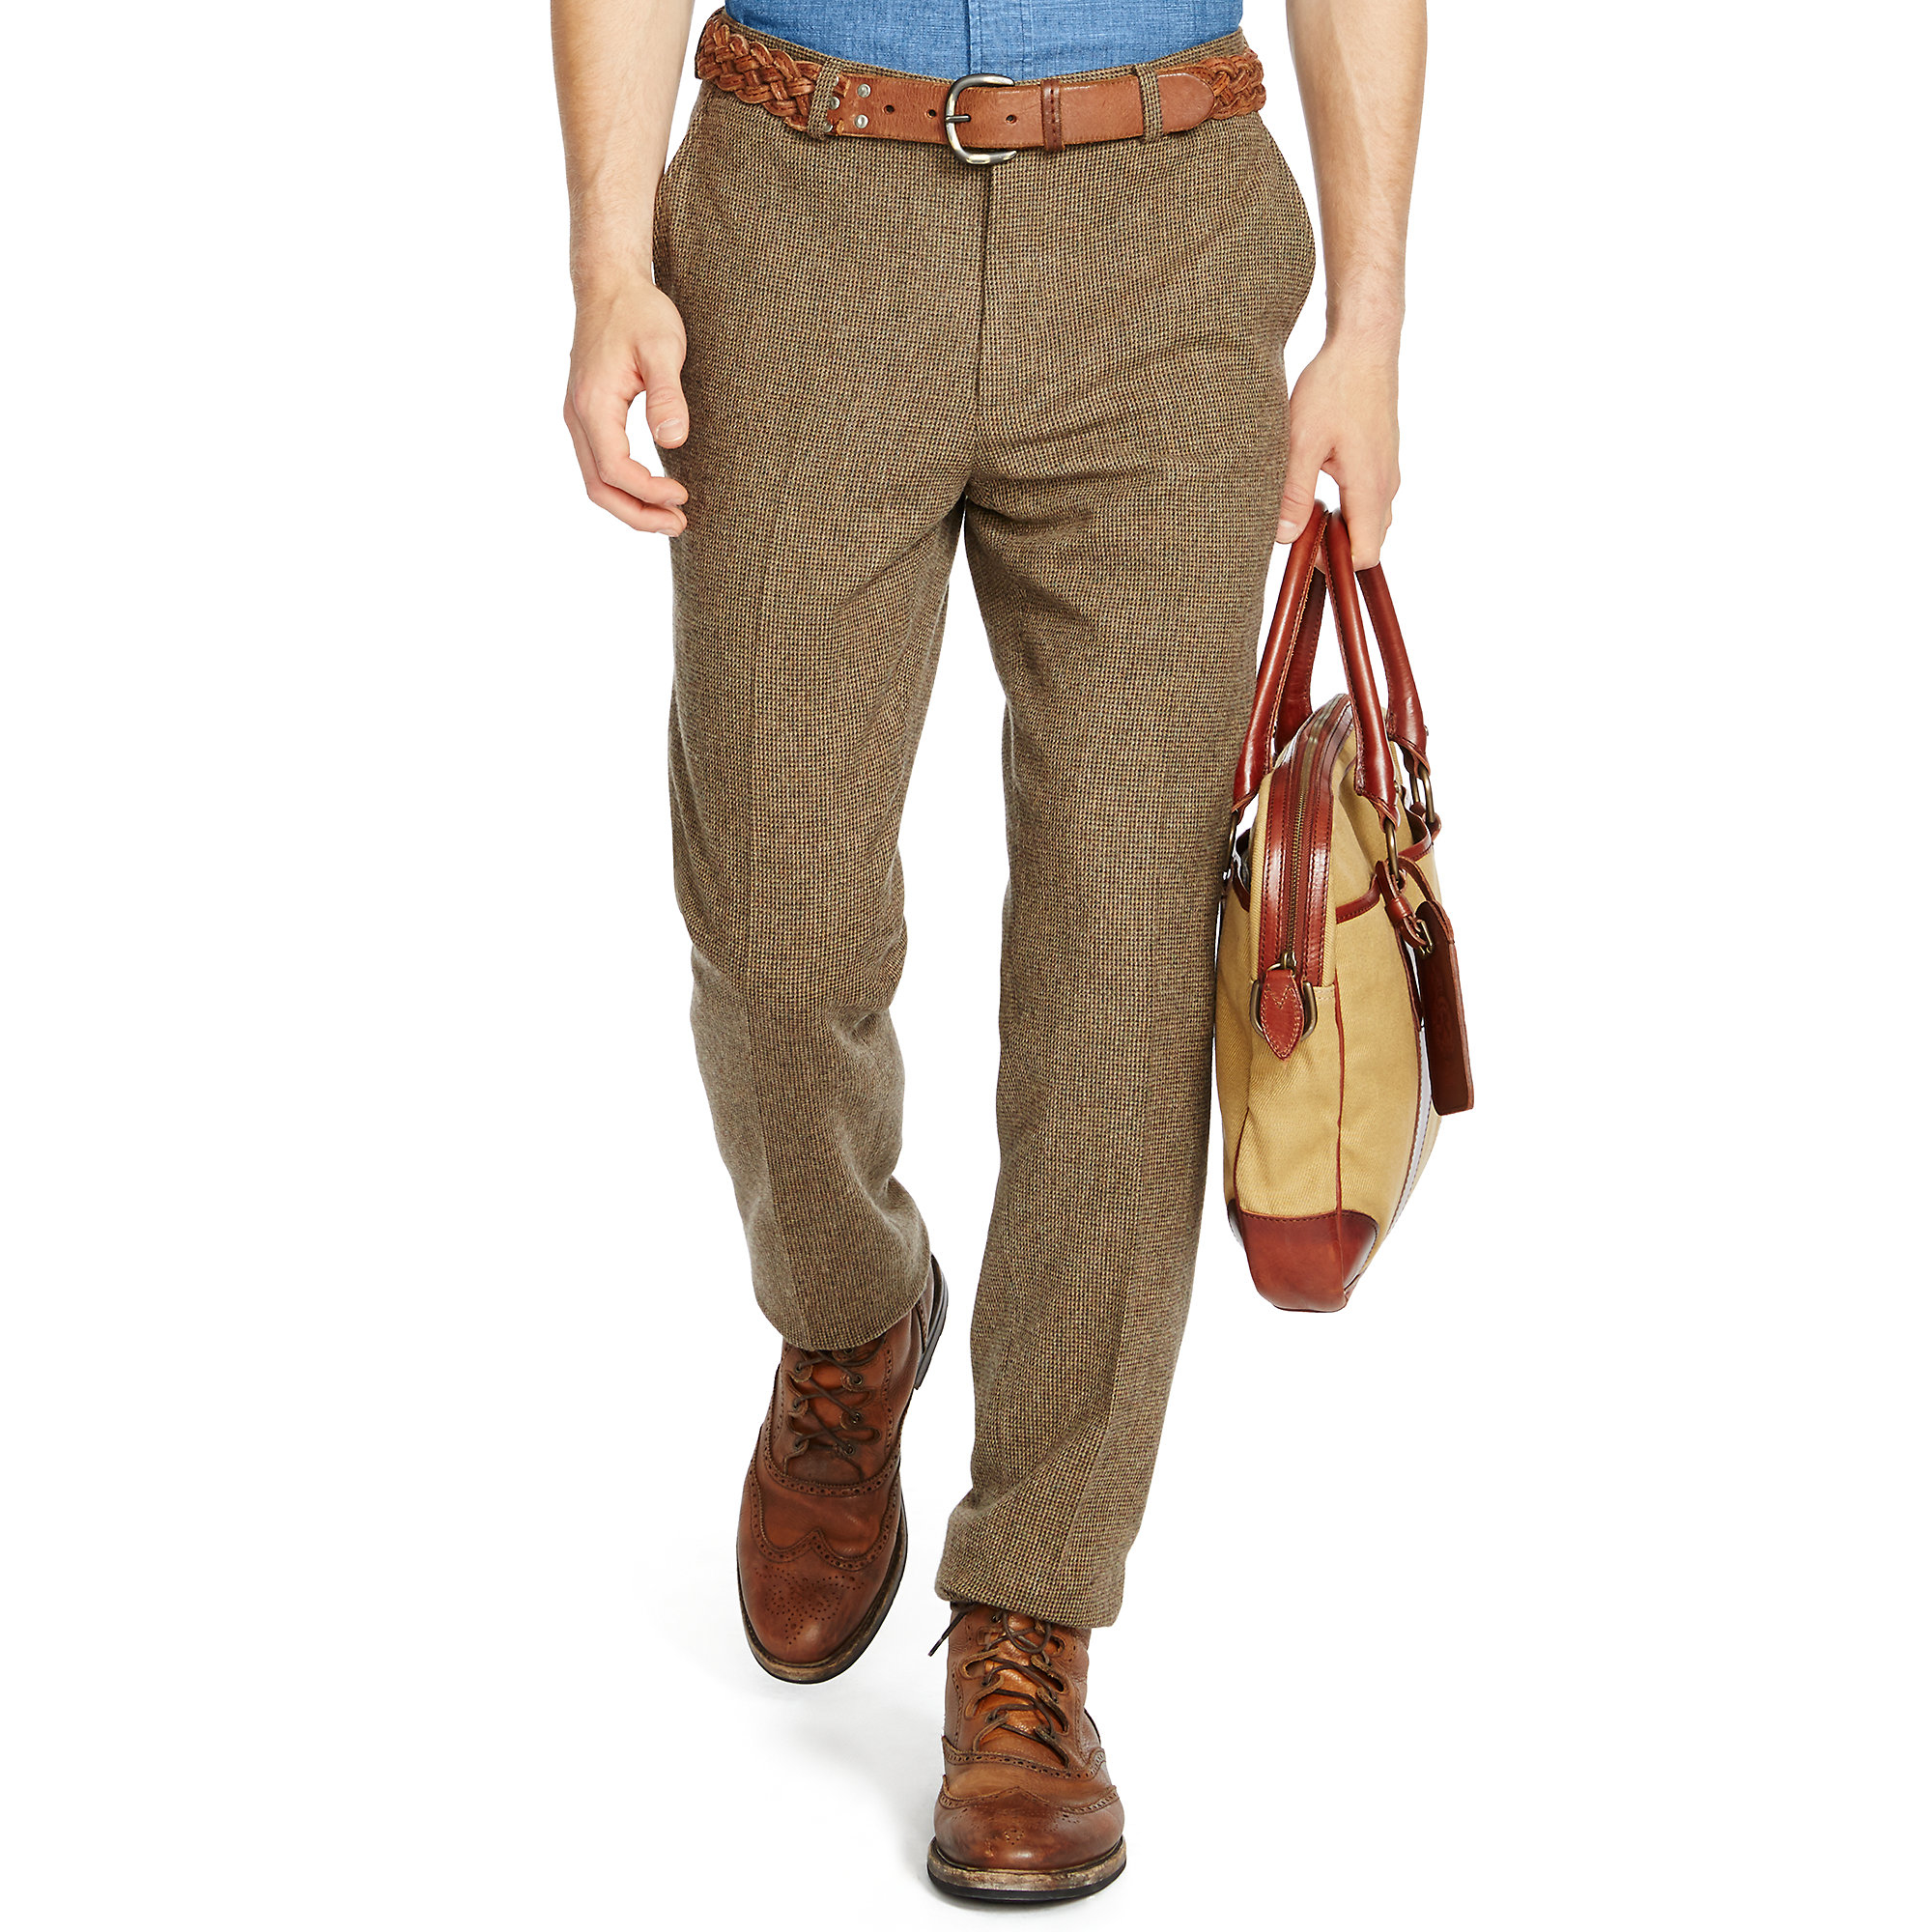 Lyst - Polo Ralph Lauren Slim-fit Tick-weave Trouser in Green for Men 0b4d147a5348